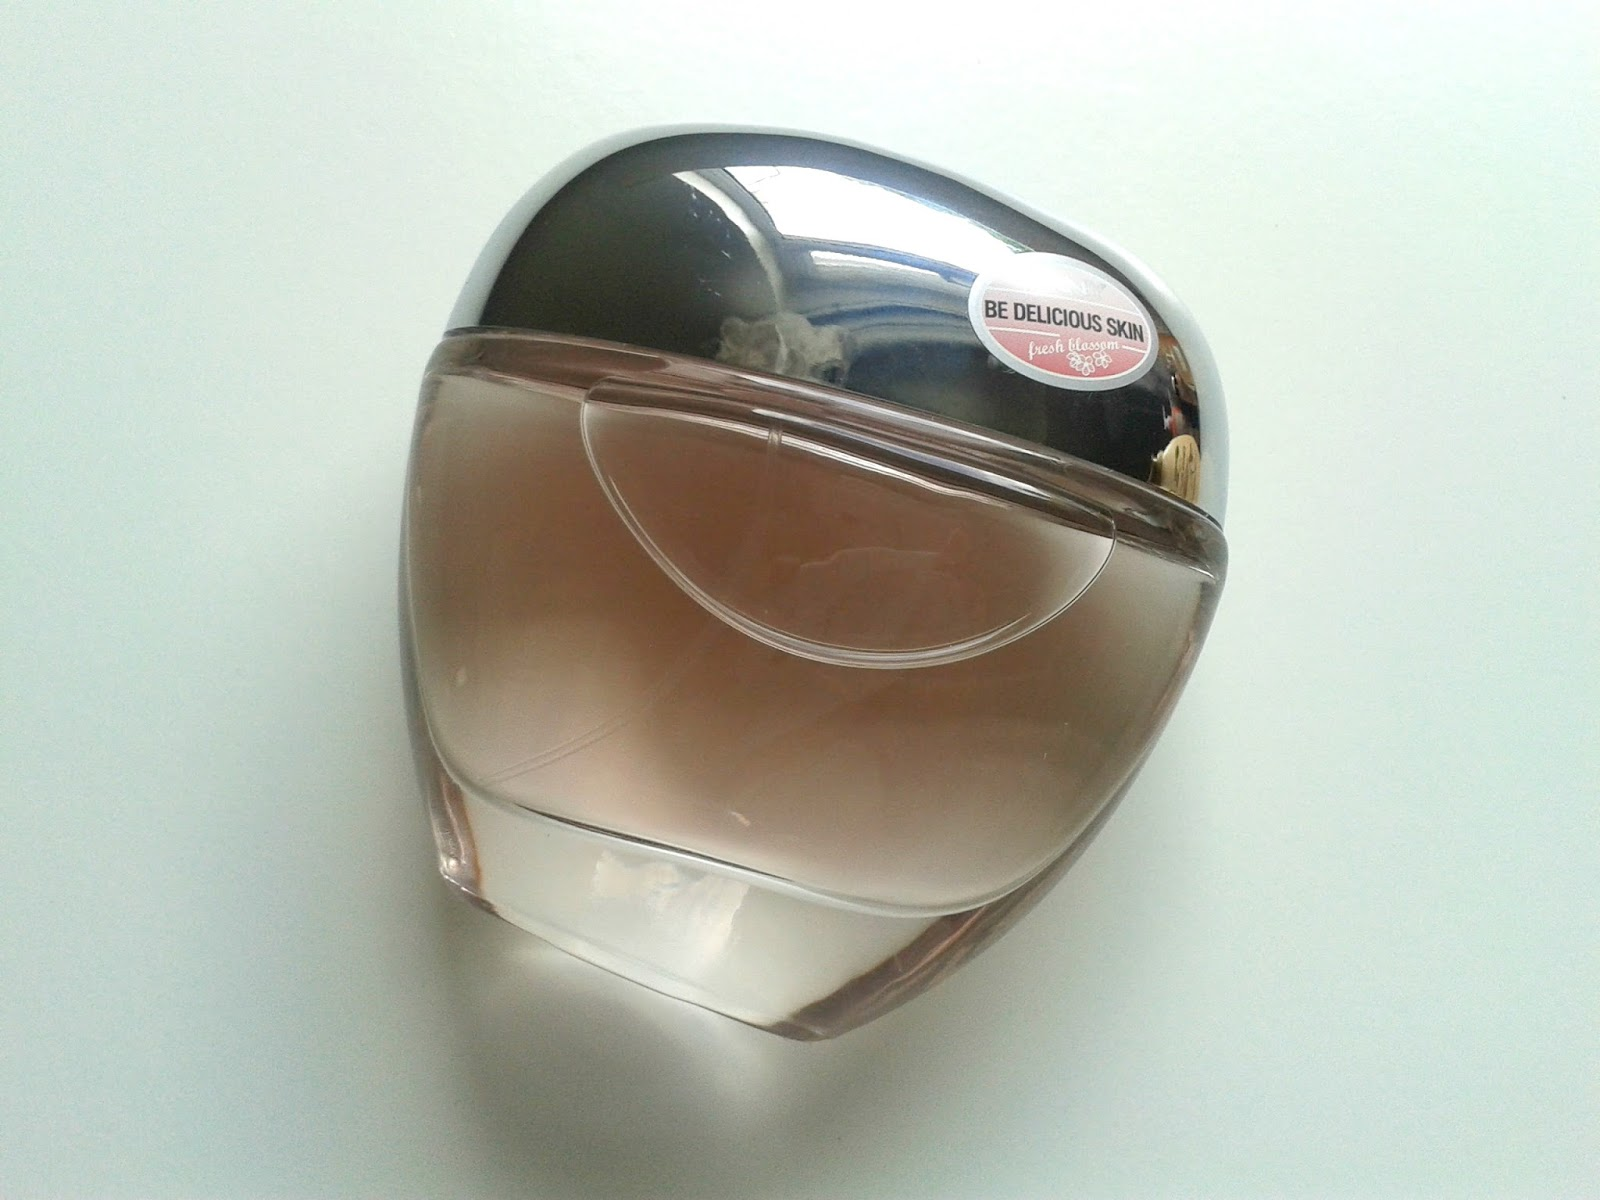 Ellis Tuesday's Summer Sun-days: Fragrances DKNY Be Delicious Skin EDT Fresh Blossom Beauty Review